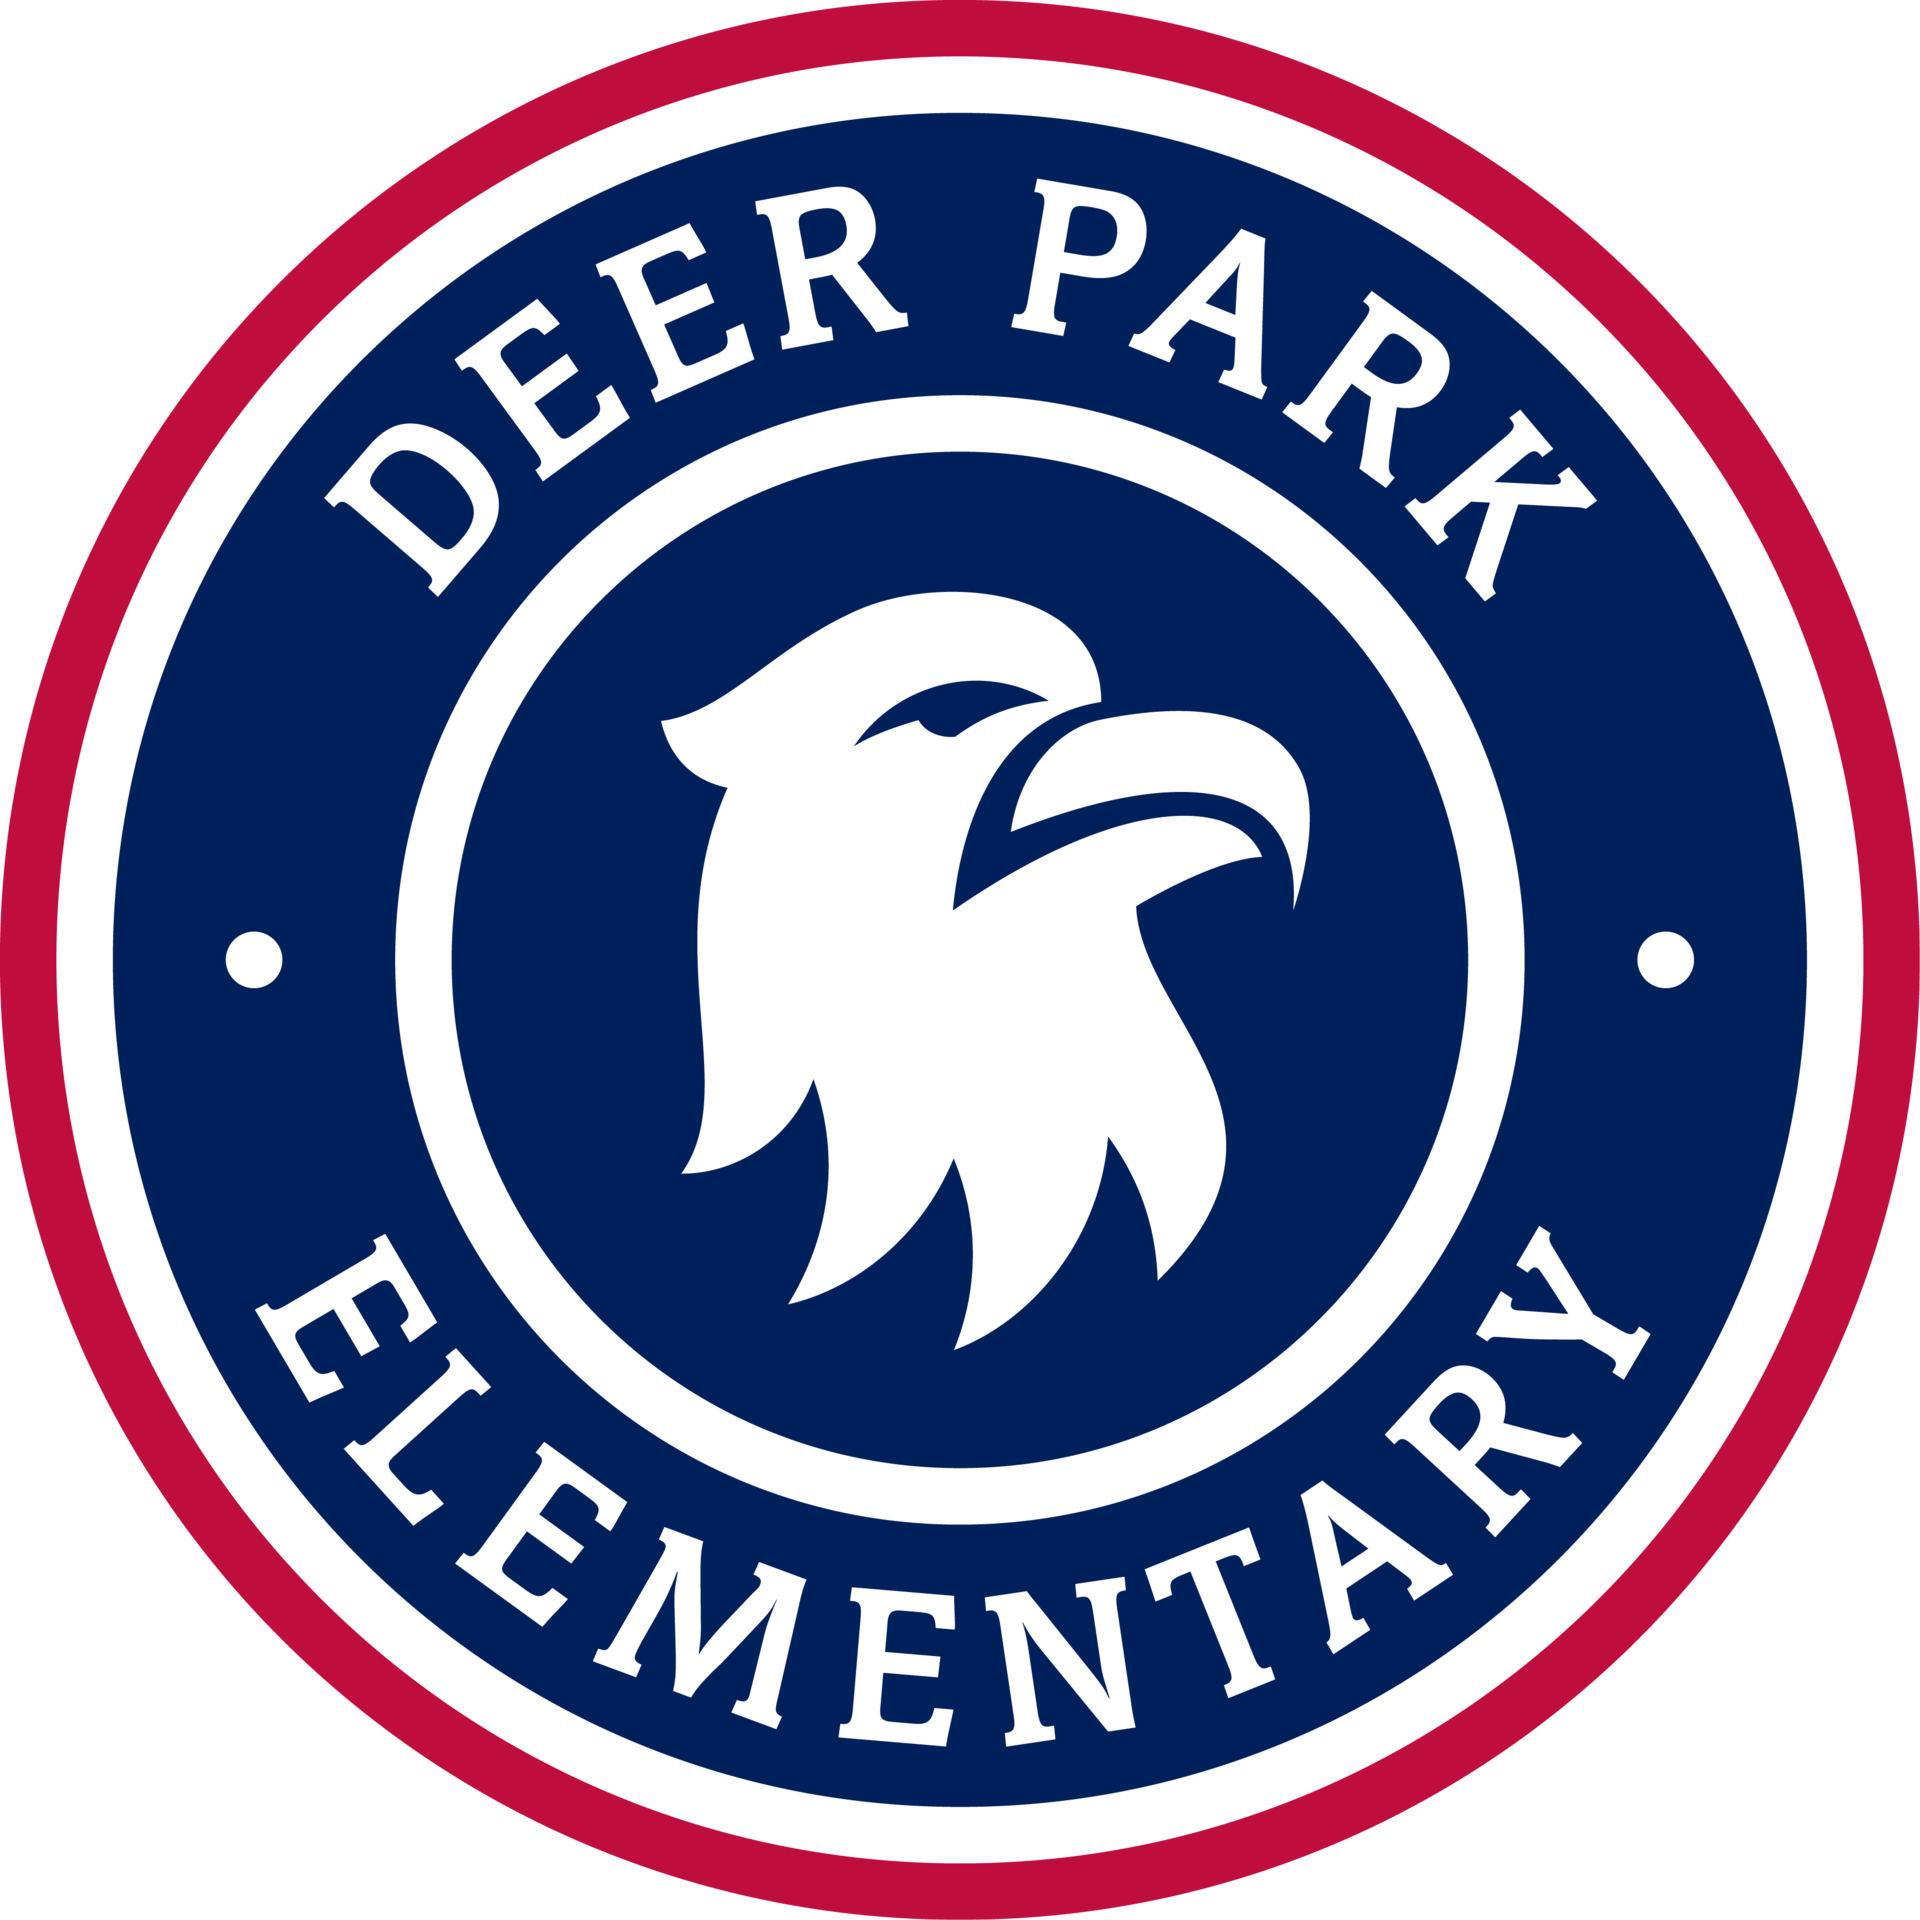 Deer Park Elementary school seal with eagle